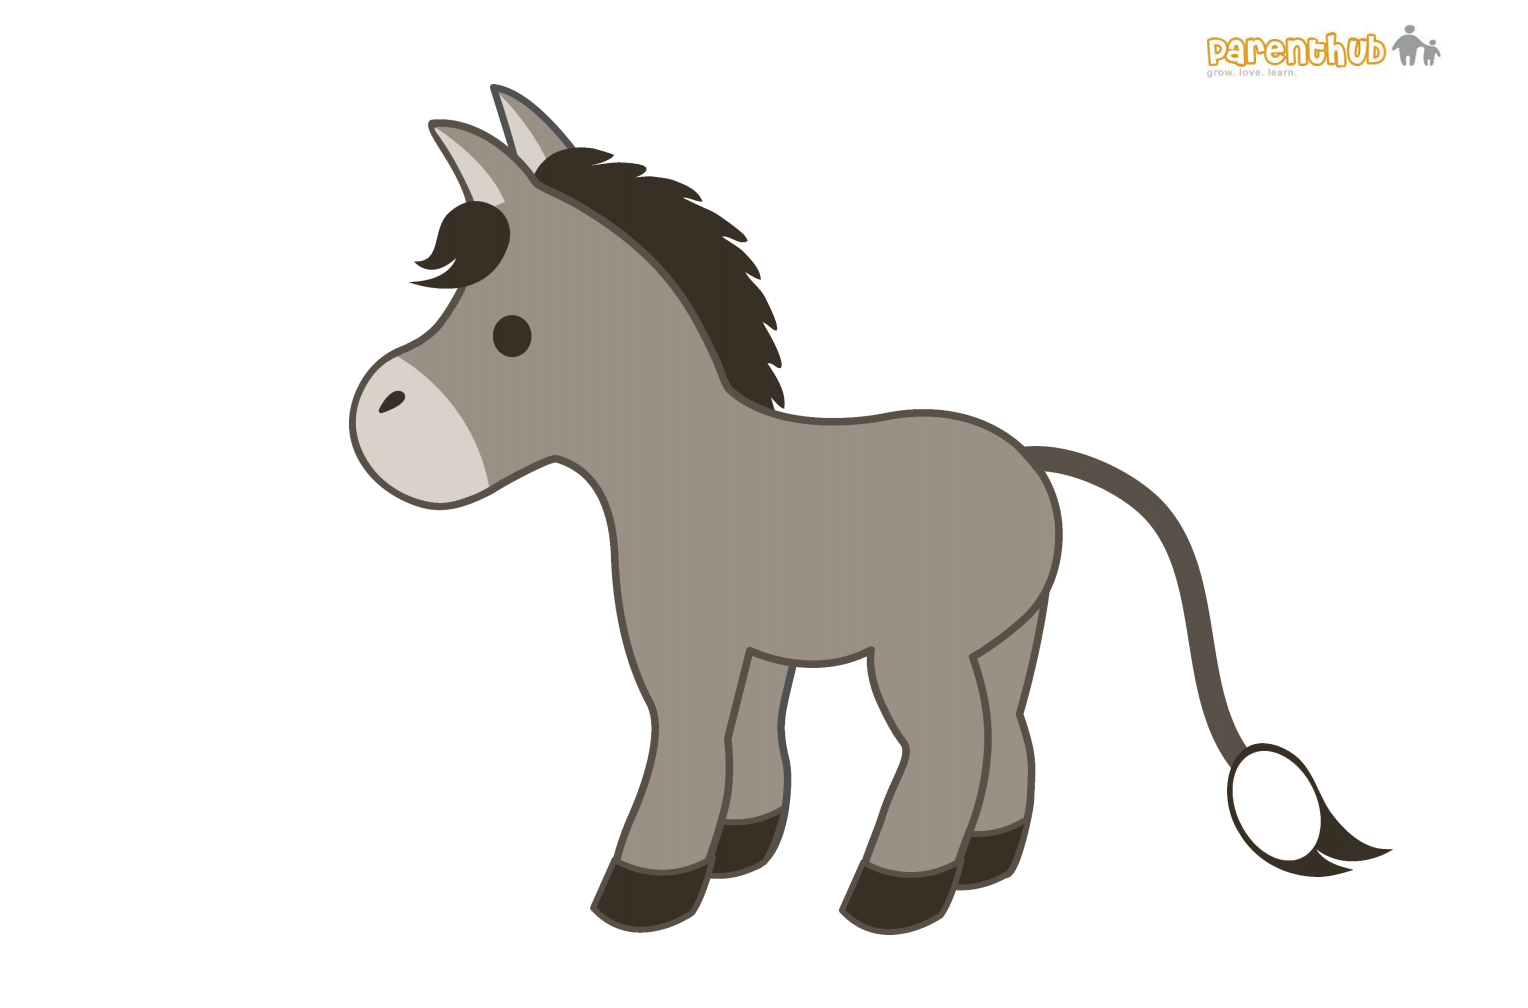 Pin The Tail Printables | Tefl | Pinterest | Printables, The Donkey - Pin The Tail On The Donkey Printable Free